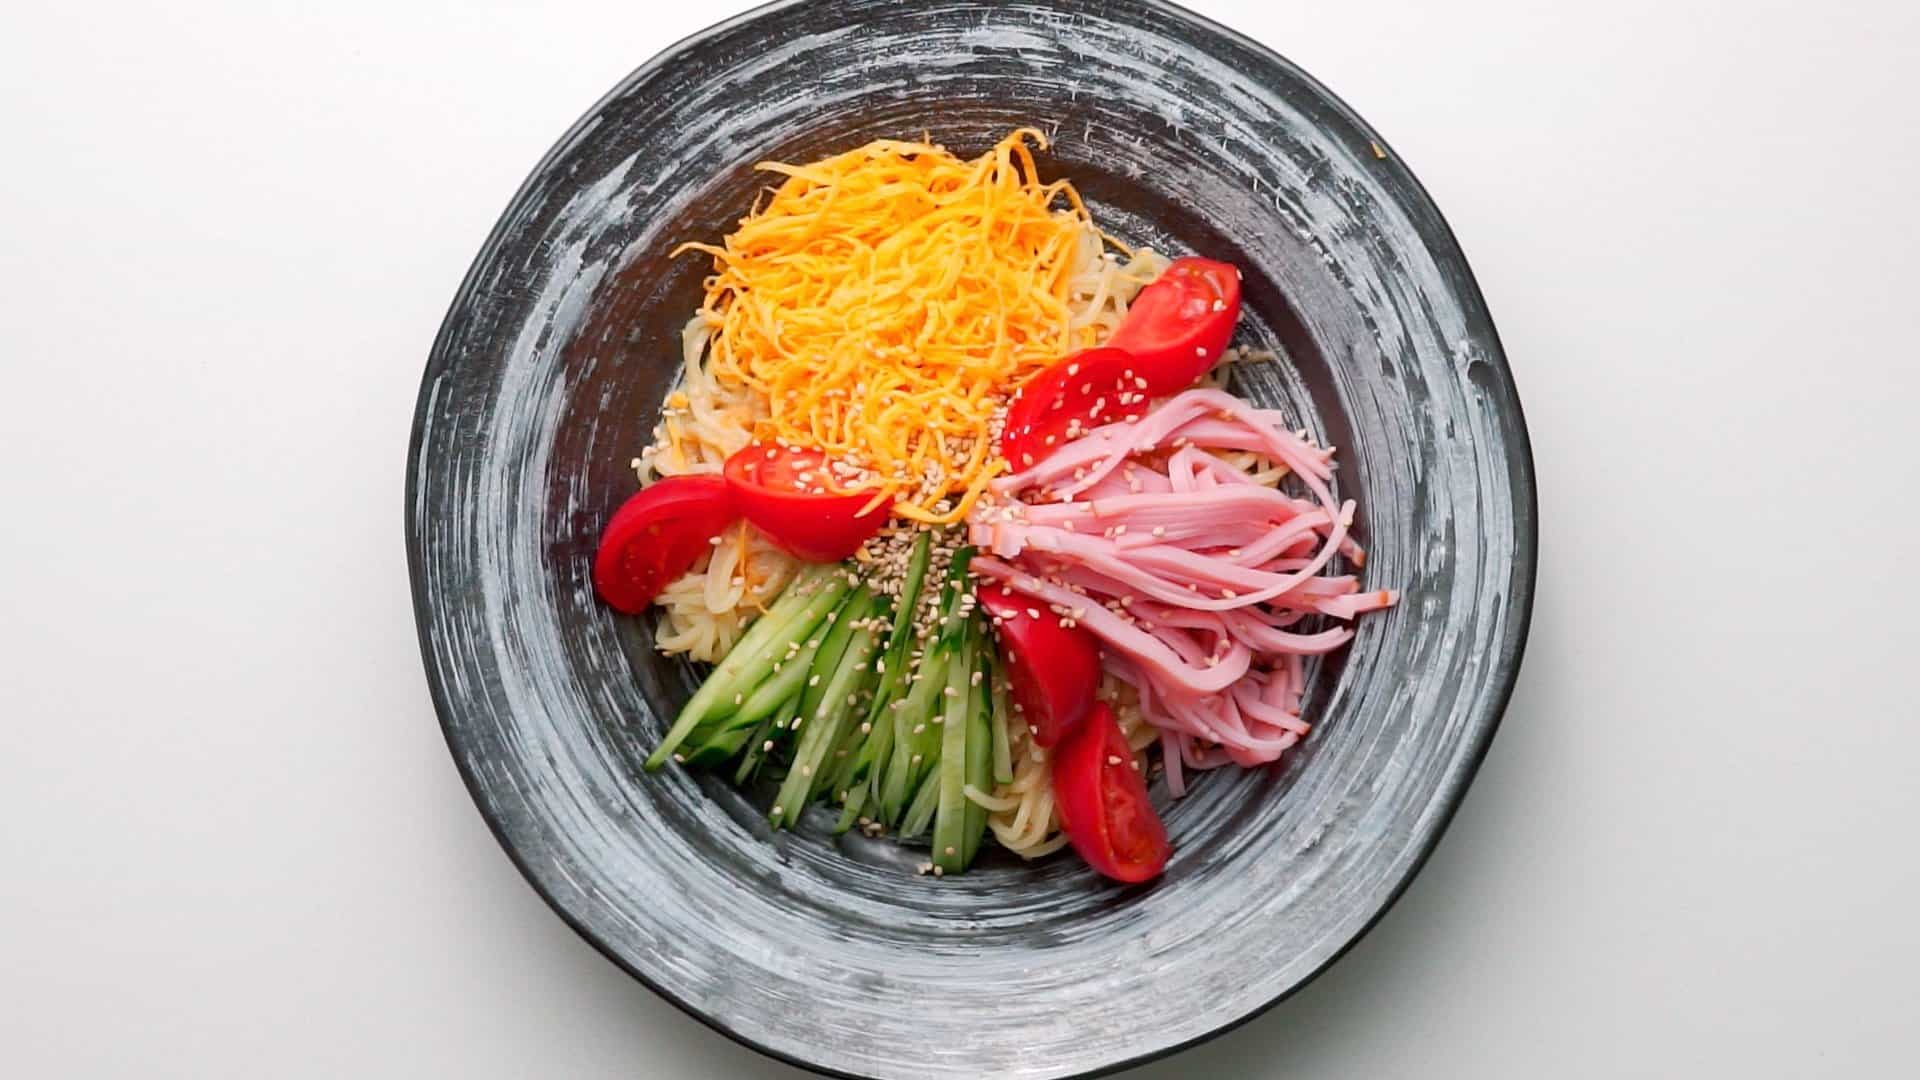 Plated Hiyashi Chuka with tomatoes, cucumbers, ham, Usuyaki Tamago, and chilled ramen noodles.